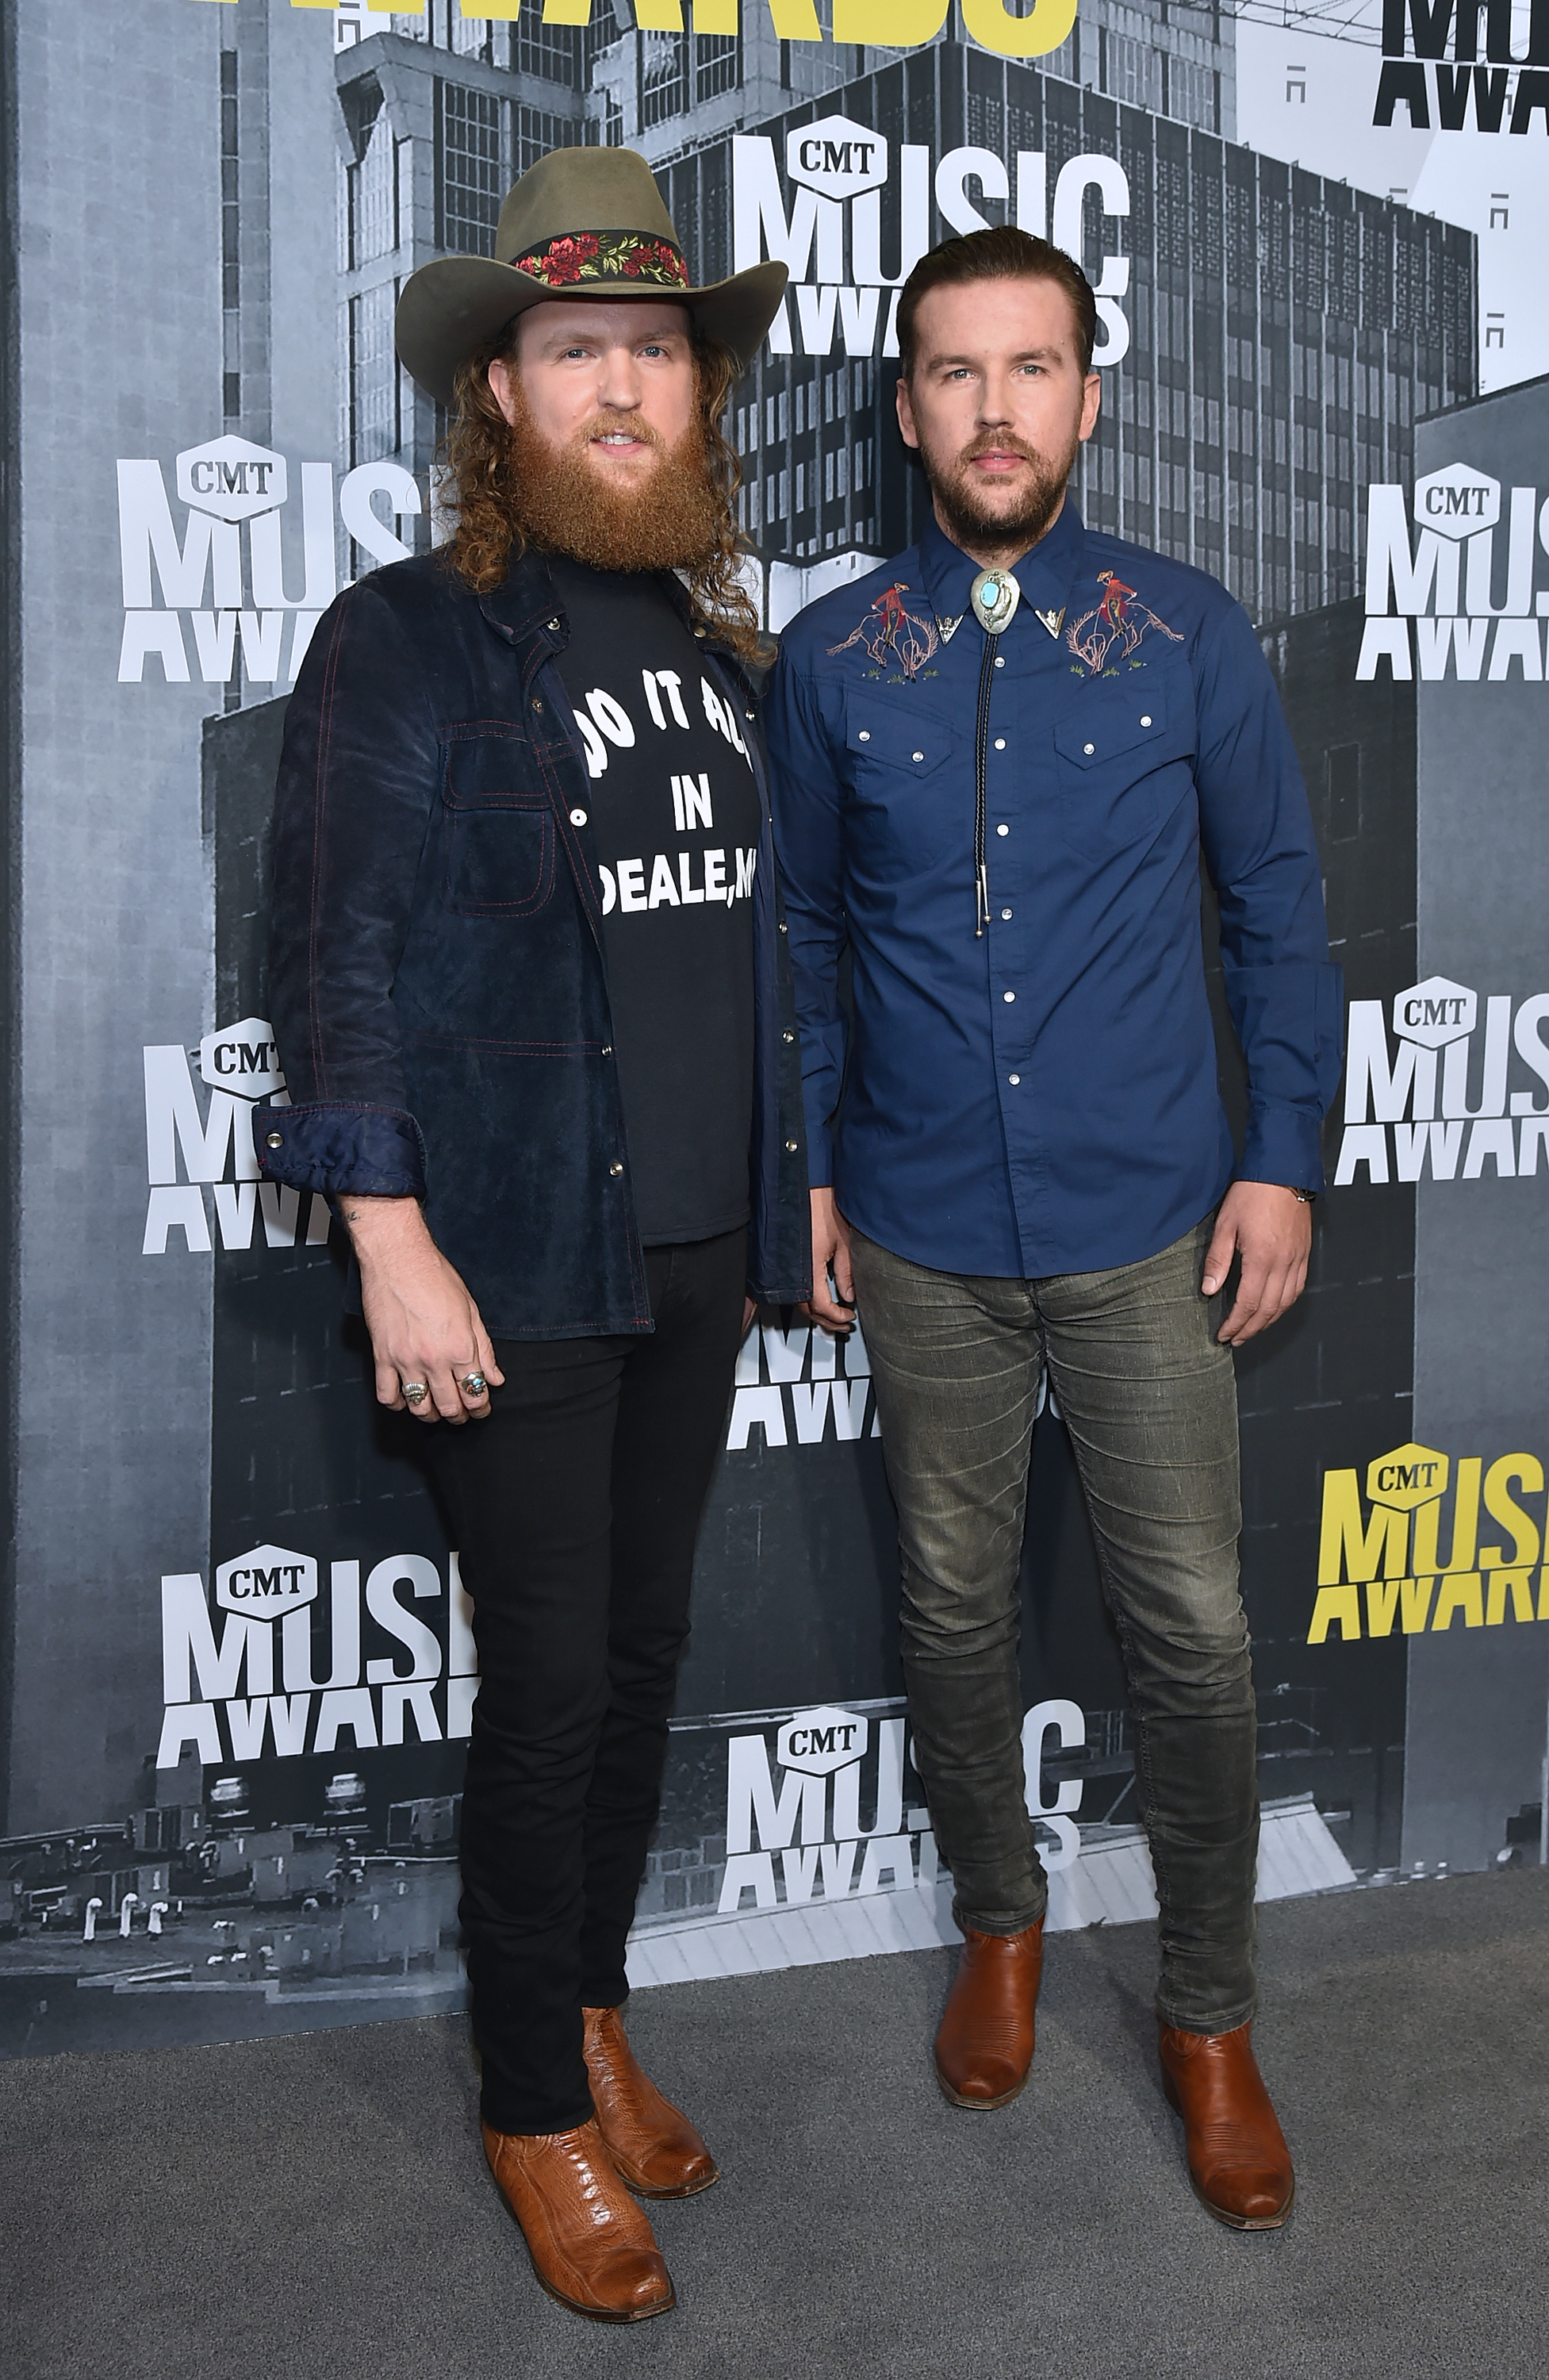 NASHVILLE, TN - JUNE 07: Musicians John Osborne (L) and T.J. Osborne (R) of Brothers Osborne attend the 2017 CMT Music Awards at the Music City Center on June 7, 2017 in Nashville, Tennessee. (Photo by Mike Coppola/WireImage)